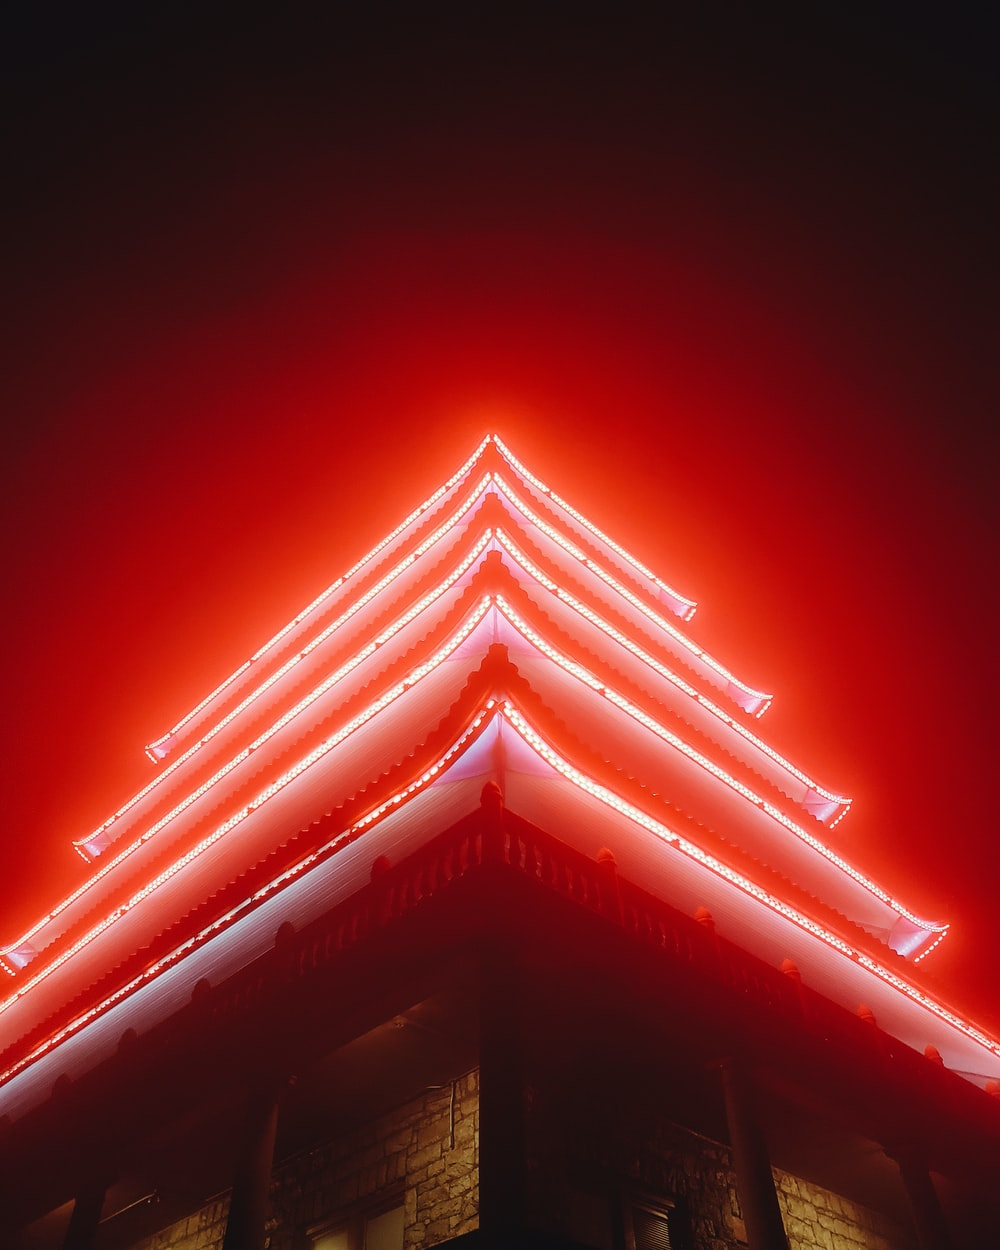 red LED strip on pagoda